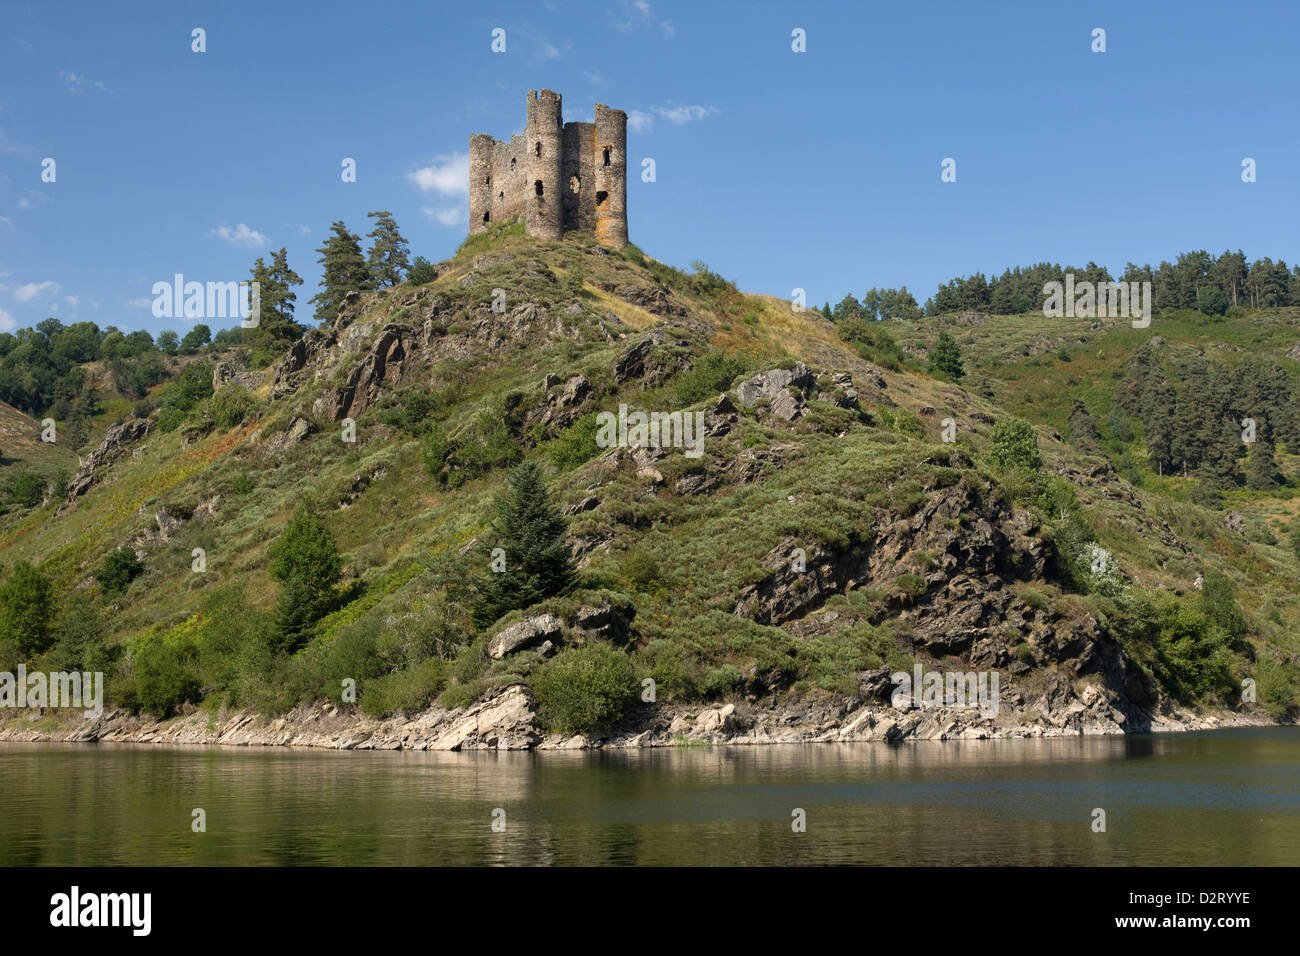 Alleuze Chateau Ruins Barage De Granval Cantal Auvergne France Stock Photo  53387250